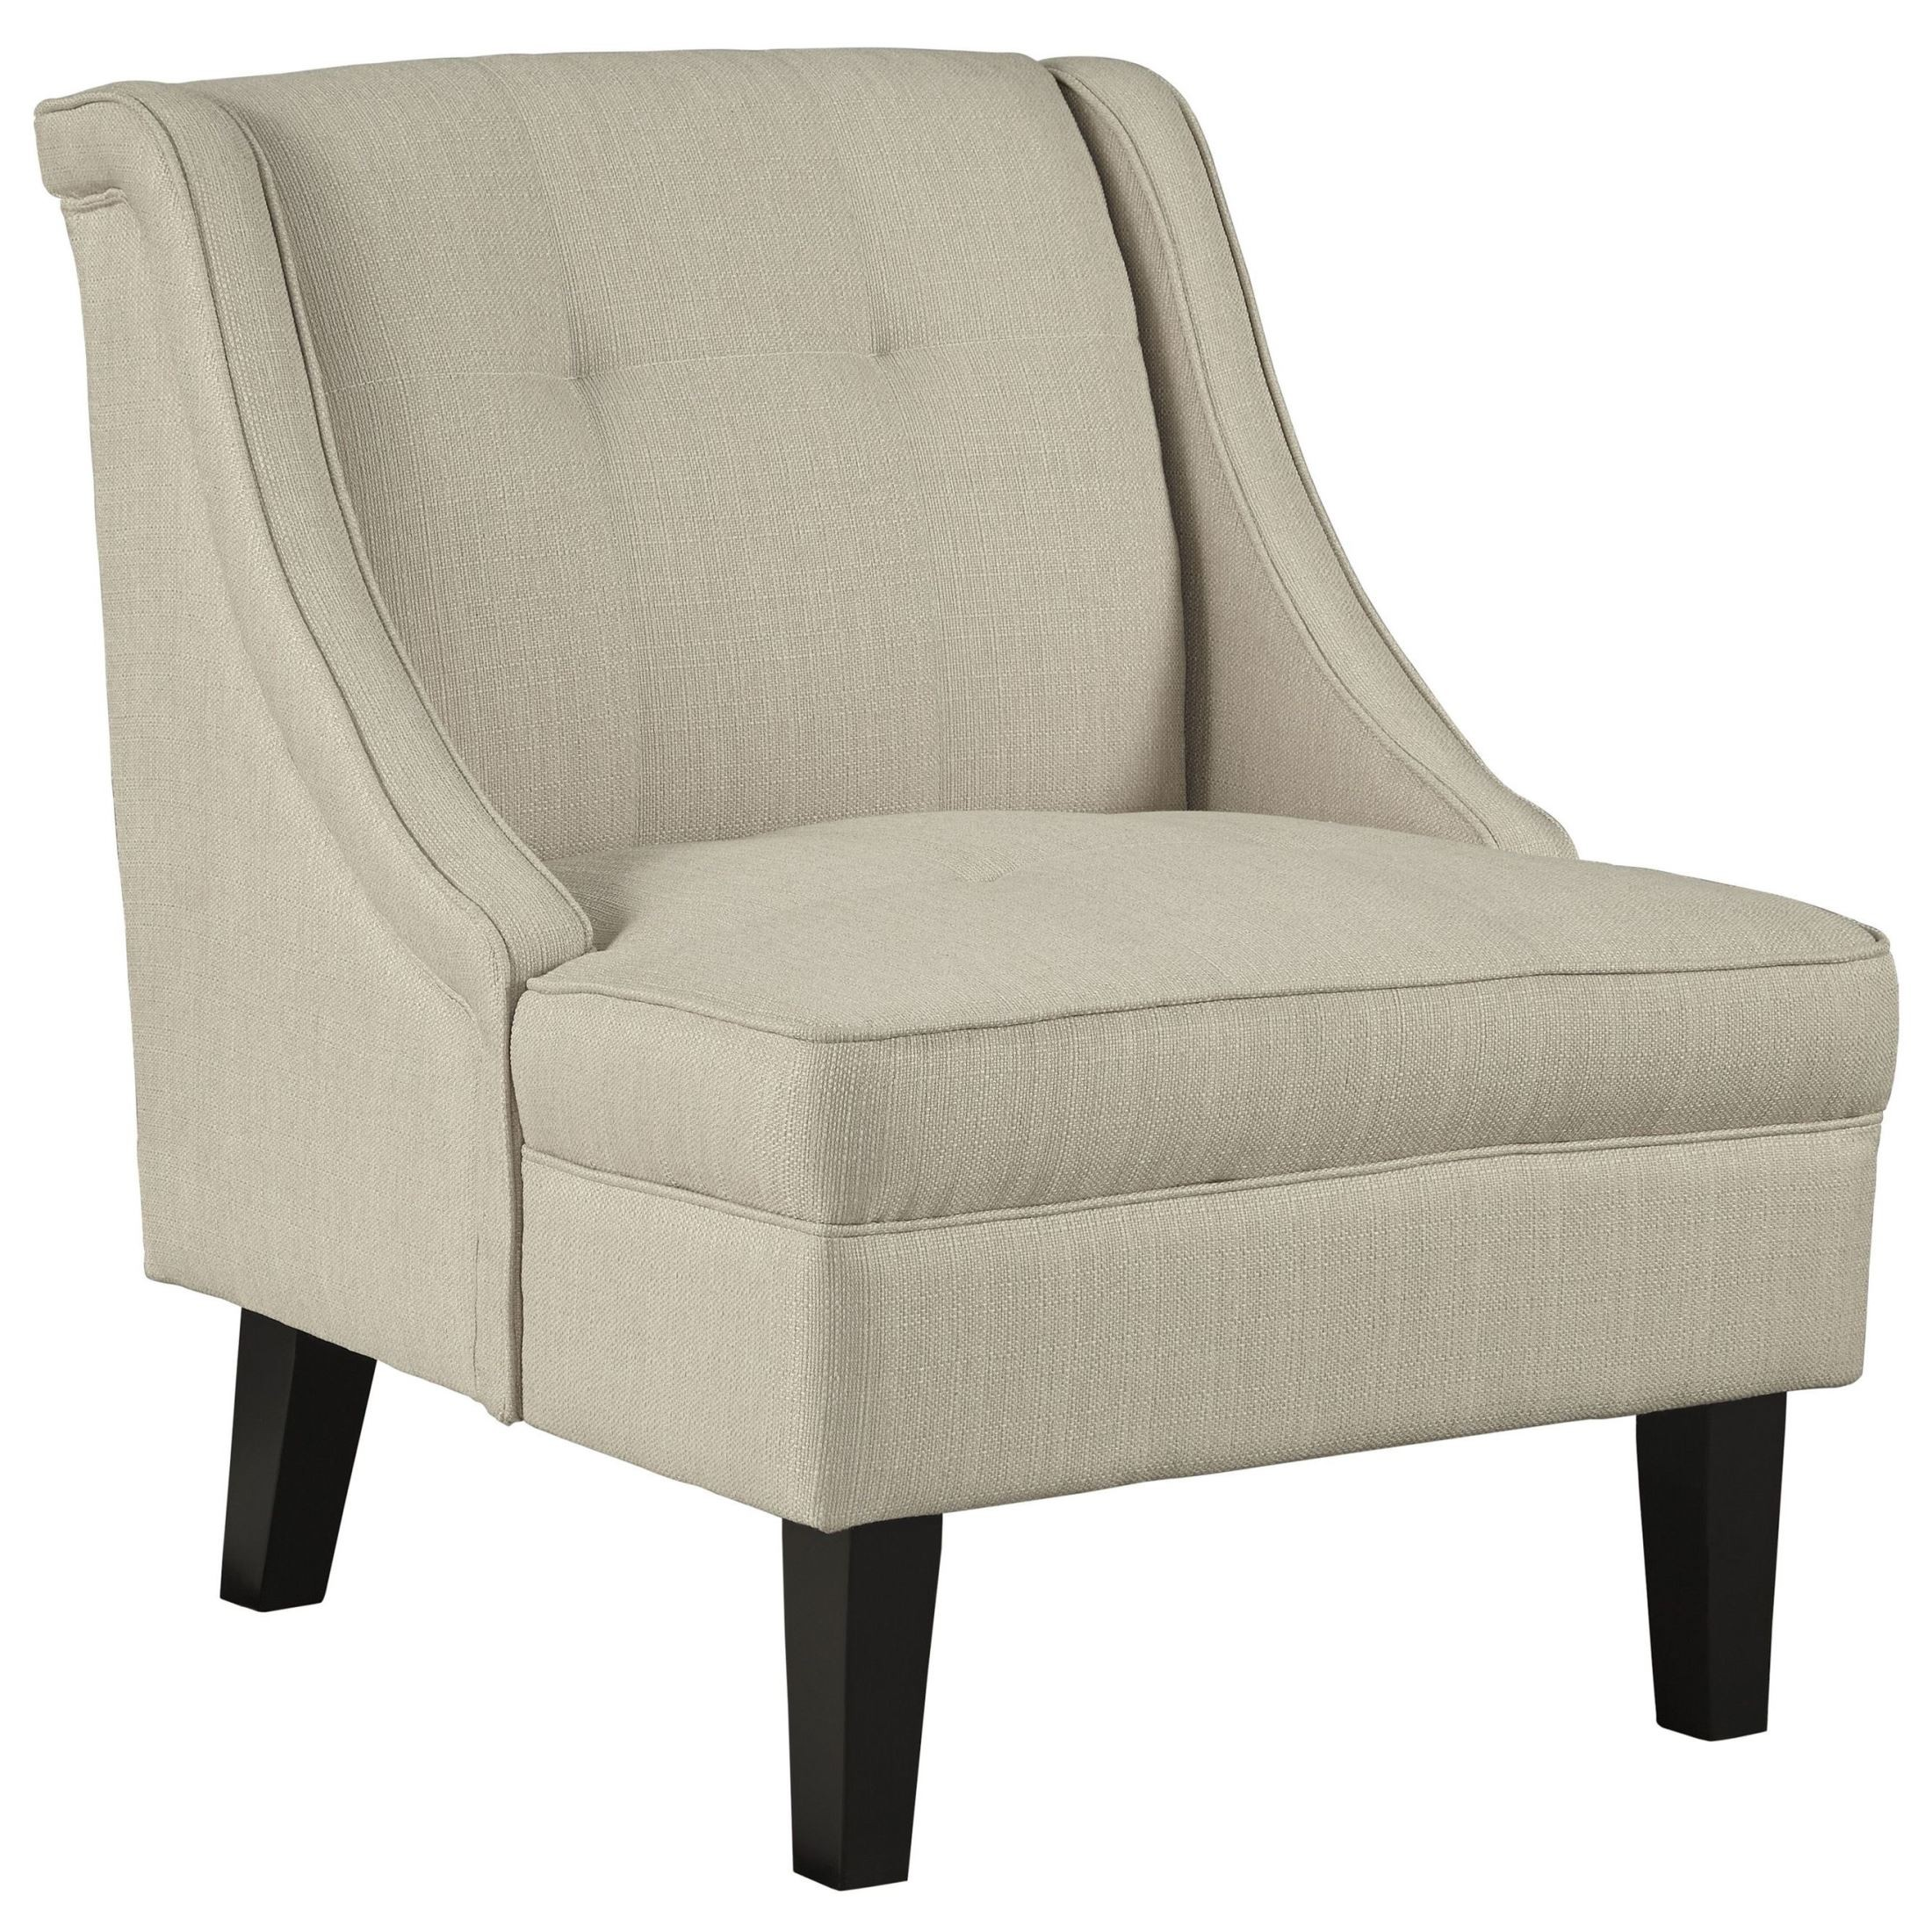 Cream Accent Chair Clarinda Cream Accent Chair From Ashley 3623060